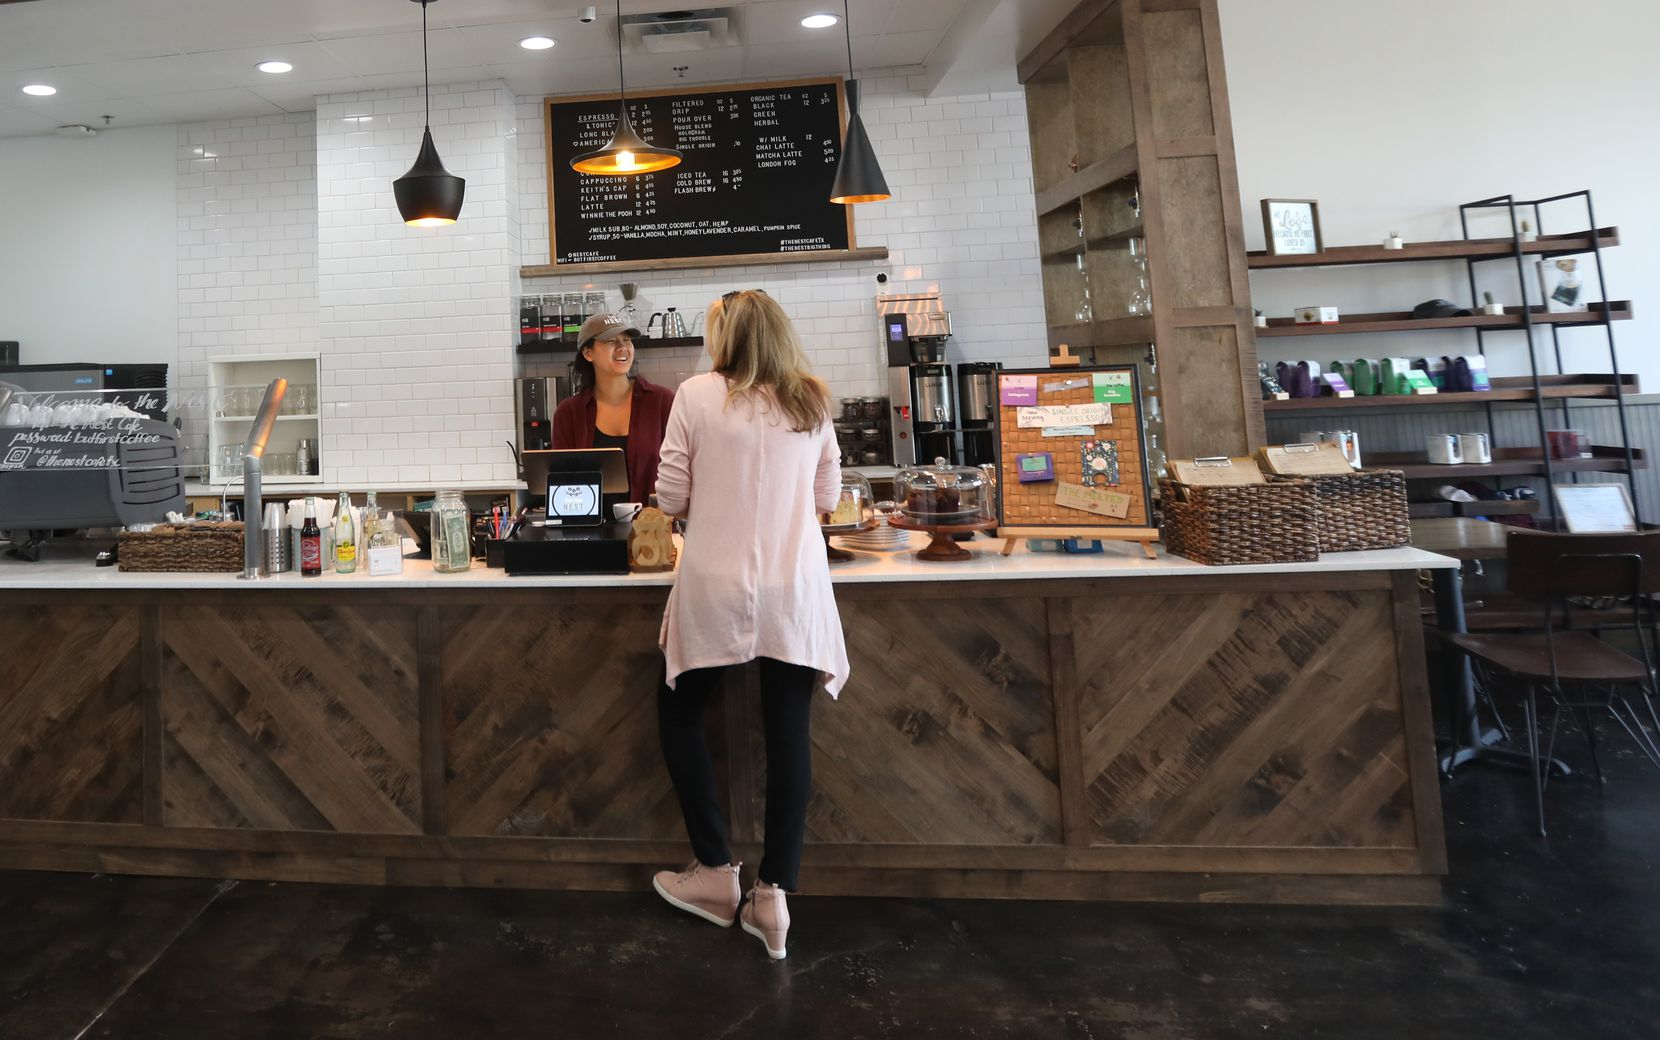 The Nest Cafe in Frisco offers a full menu of healthy dishes.